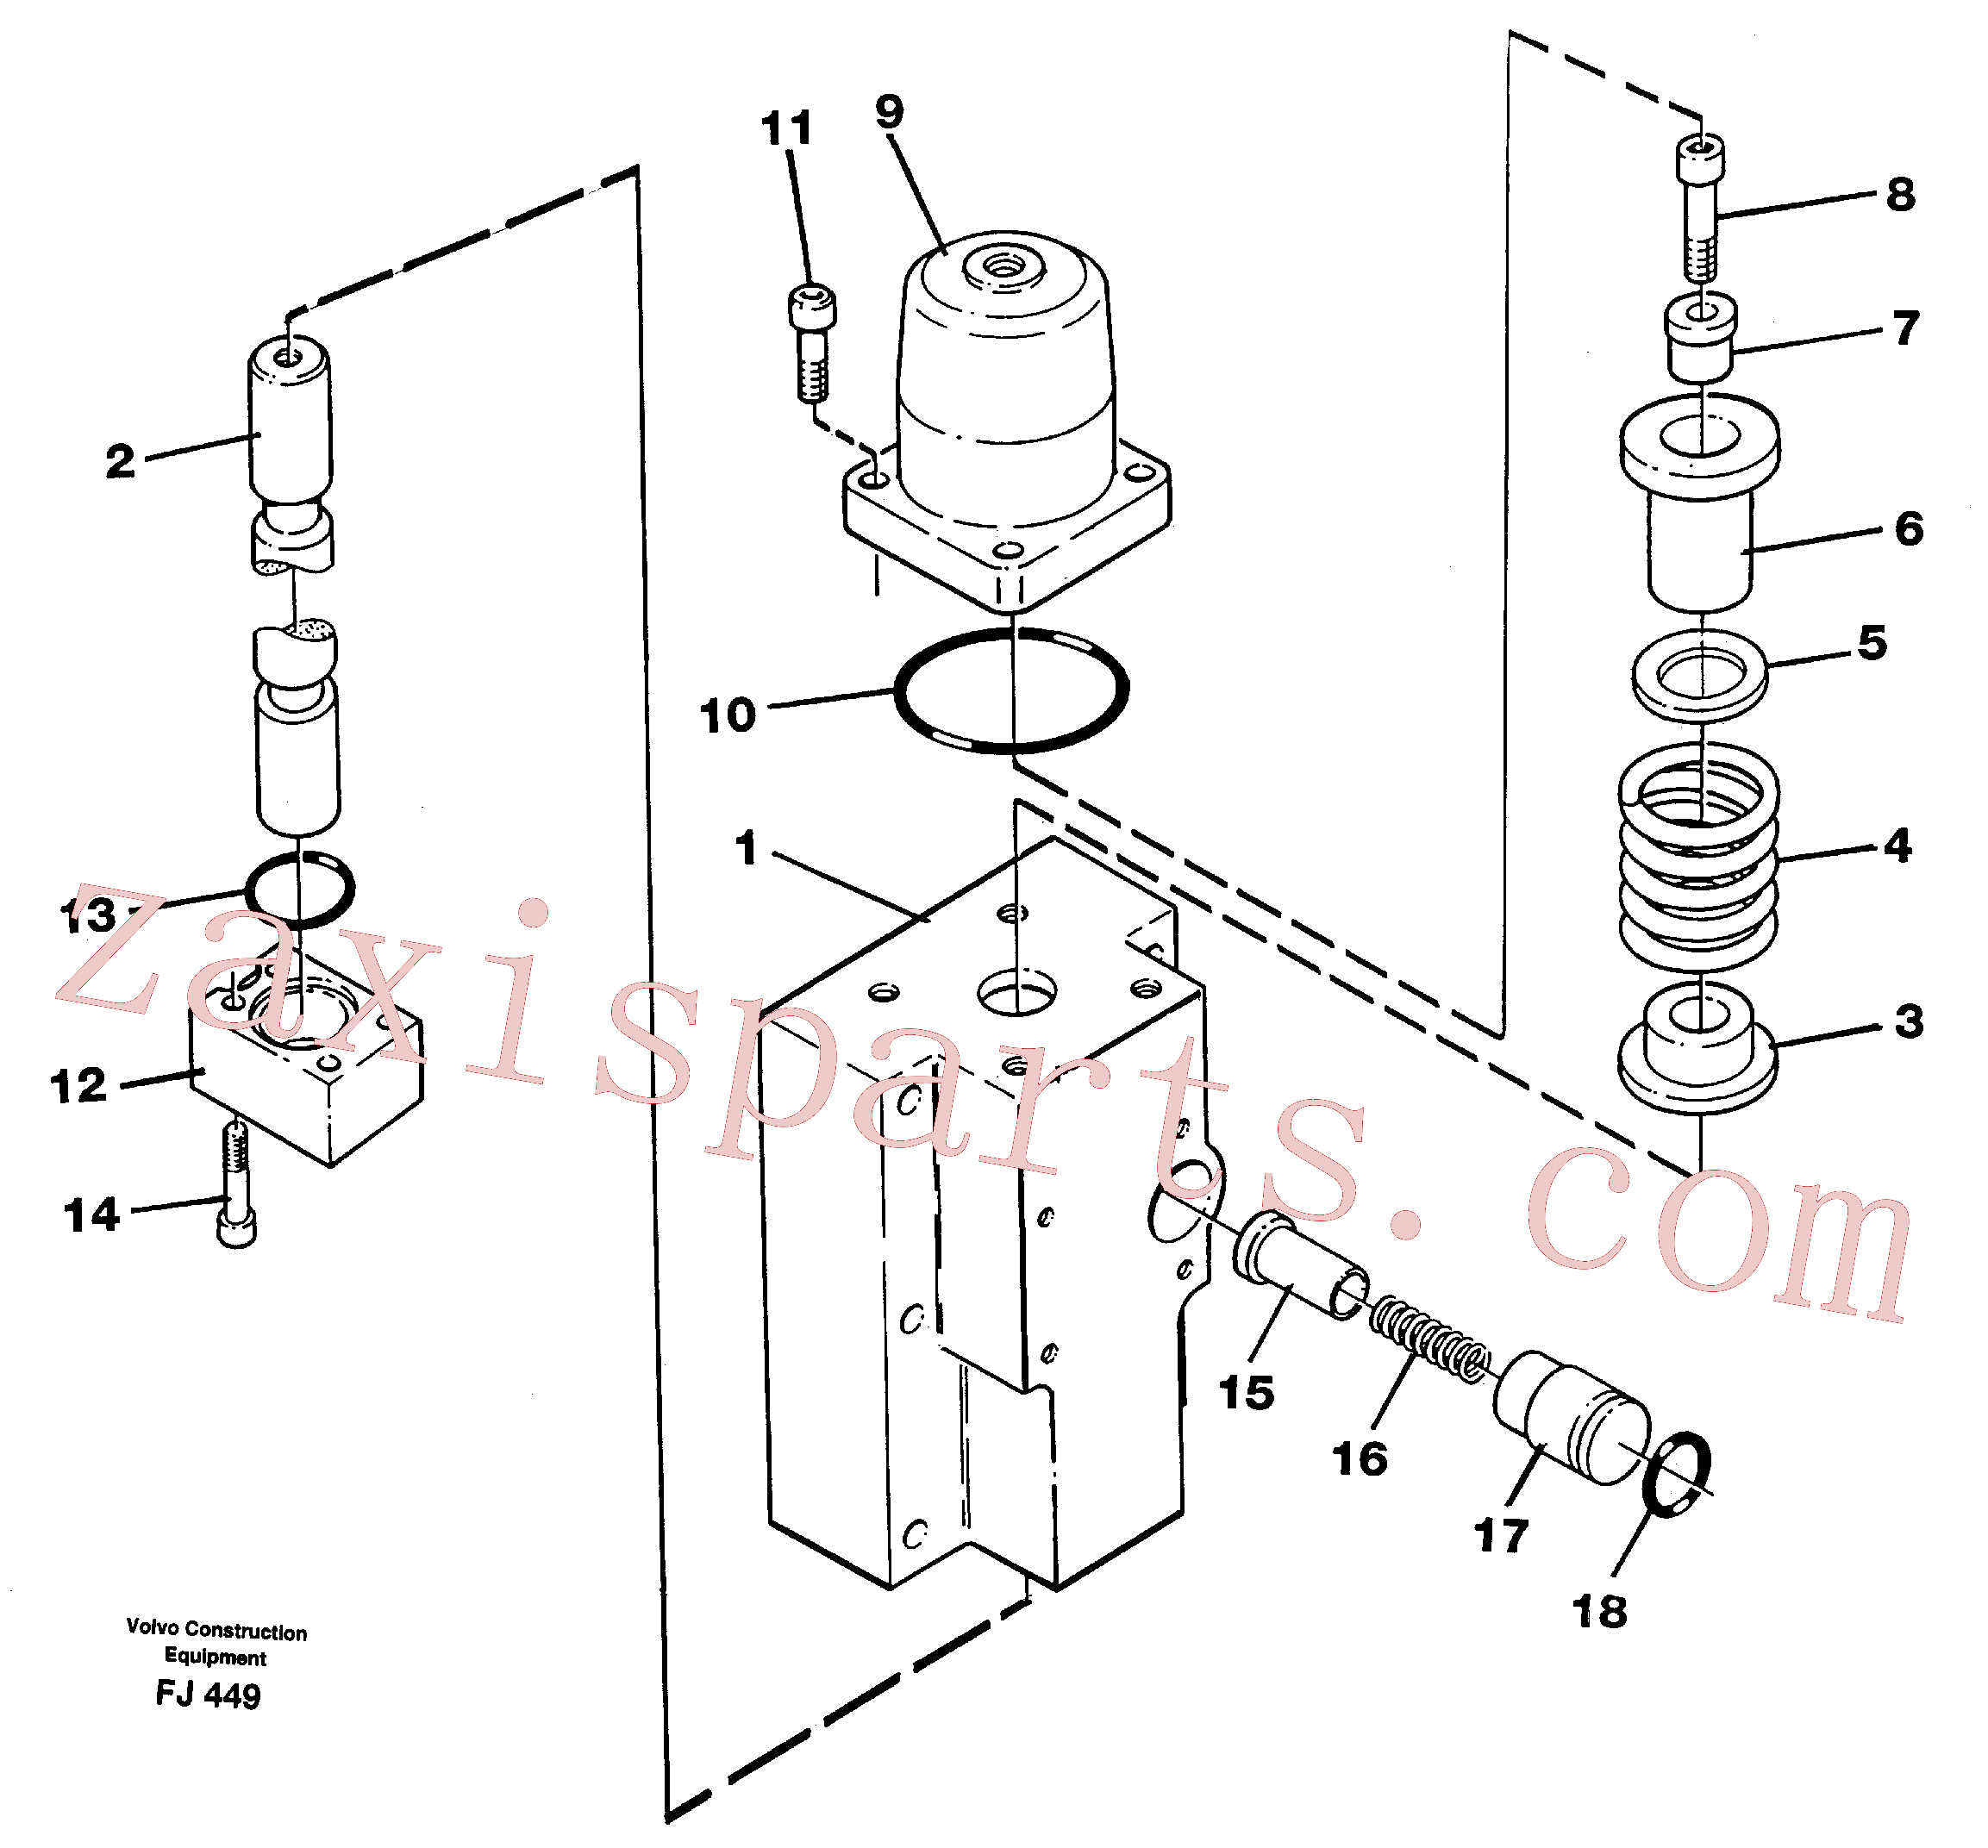 VOE14250509 for Volvo Four-way valve(FJ449 assembly)